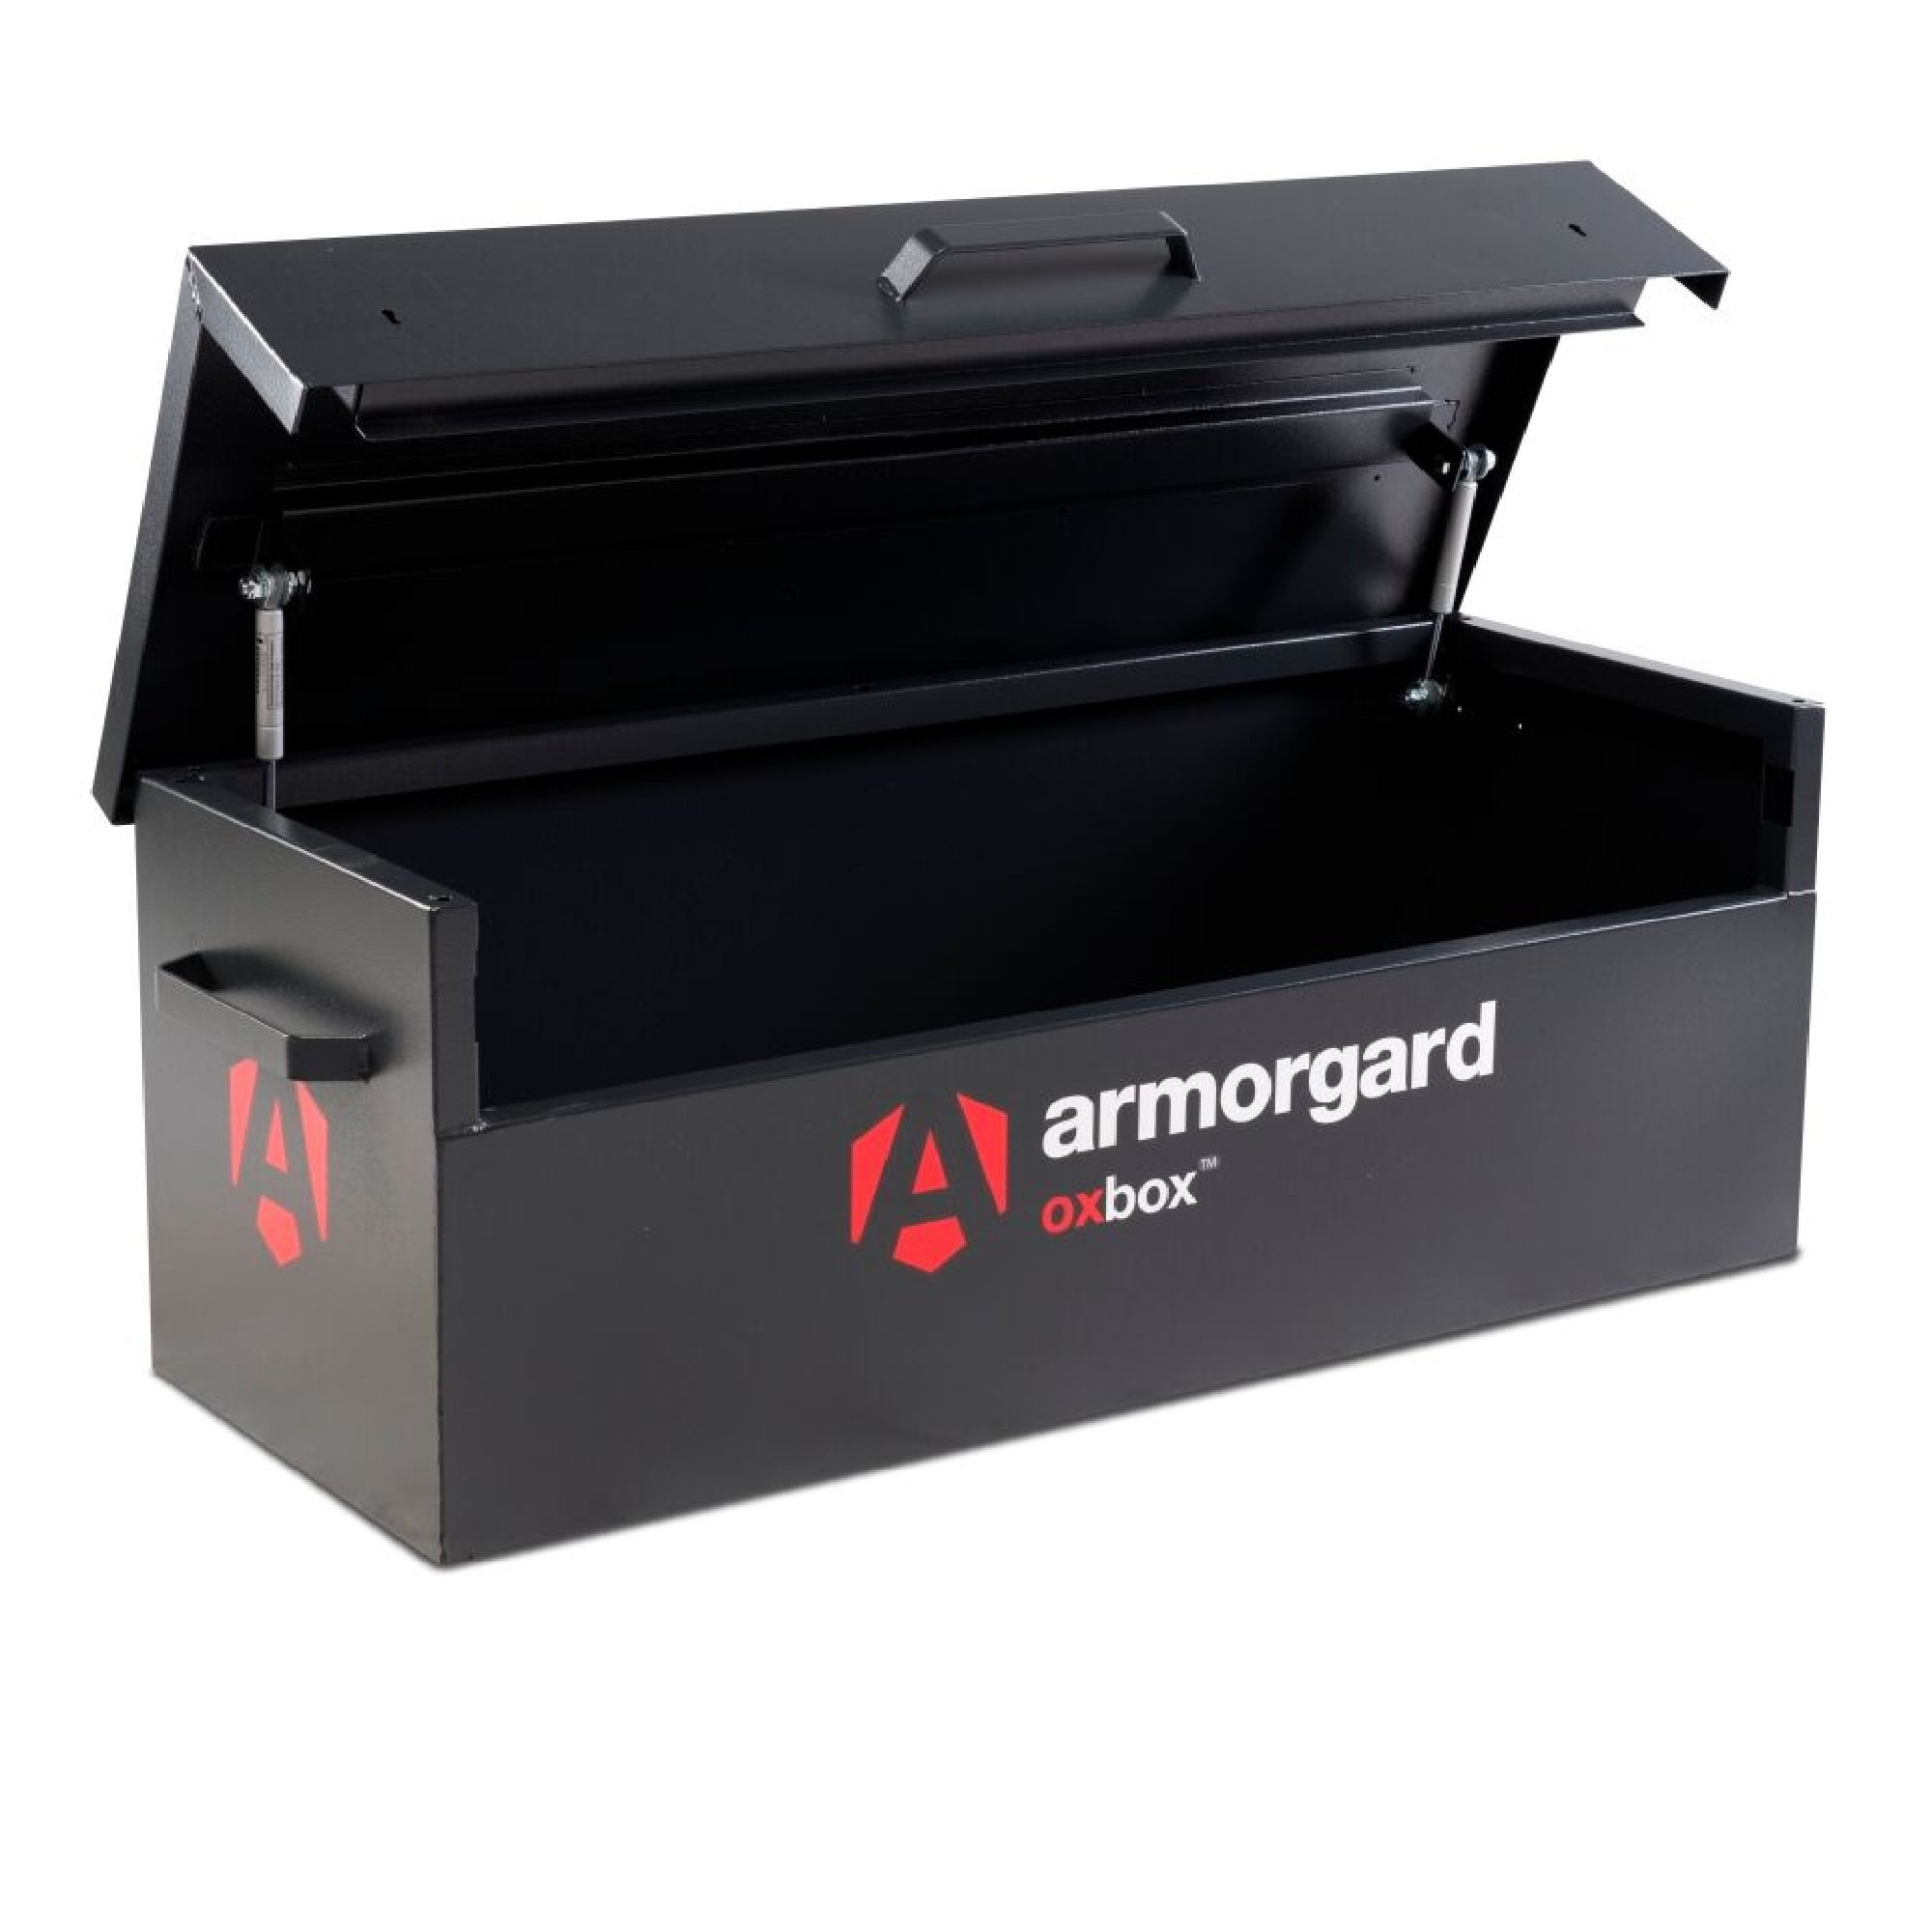 Armorgard Oxbox Truck Box OX2